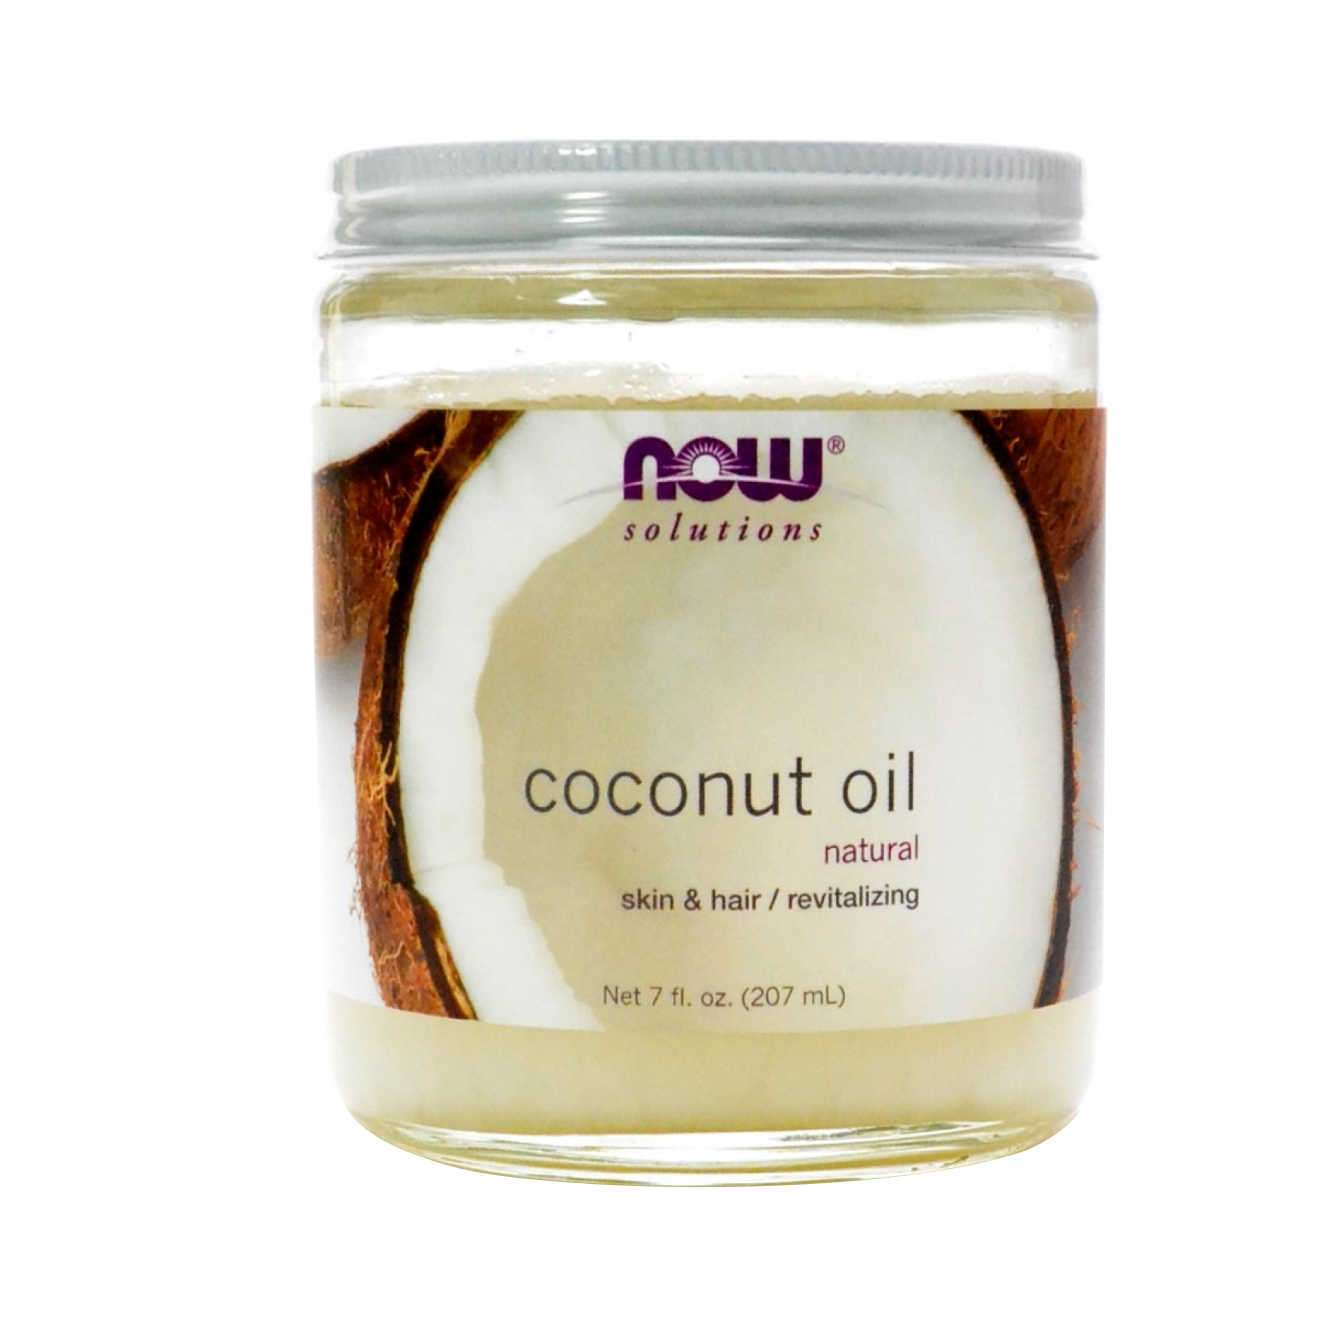 100% PURE COCONUT OIL - 207ml